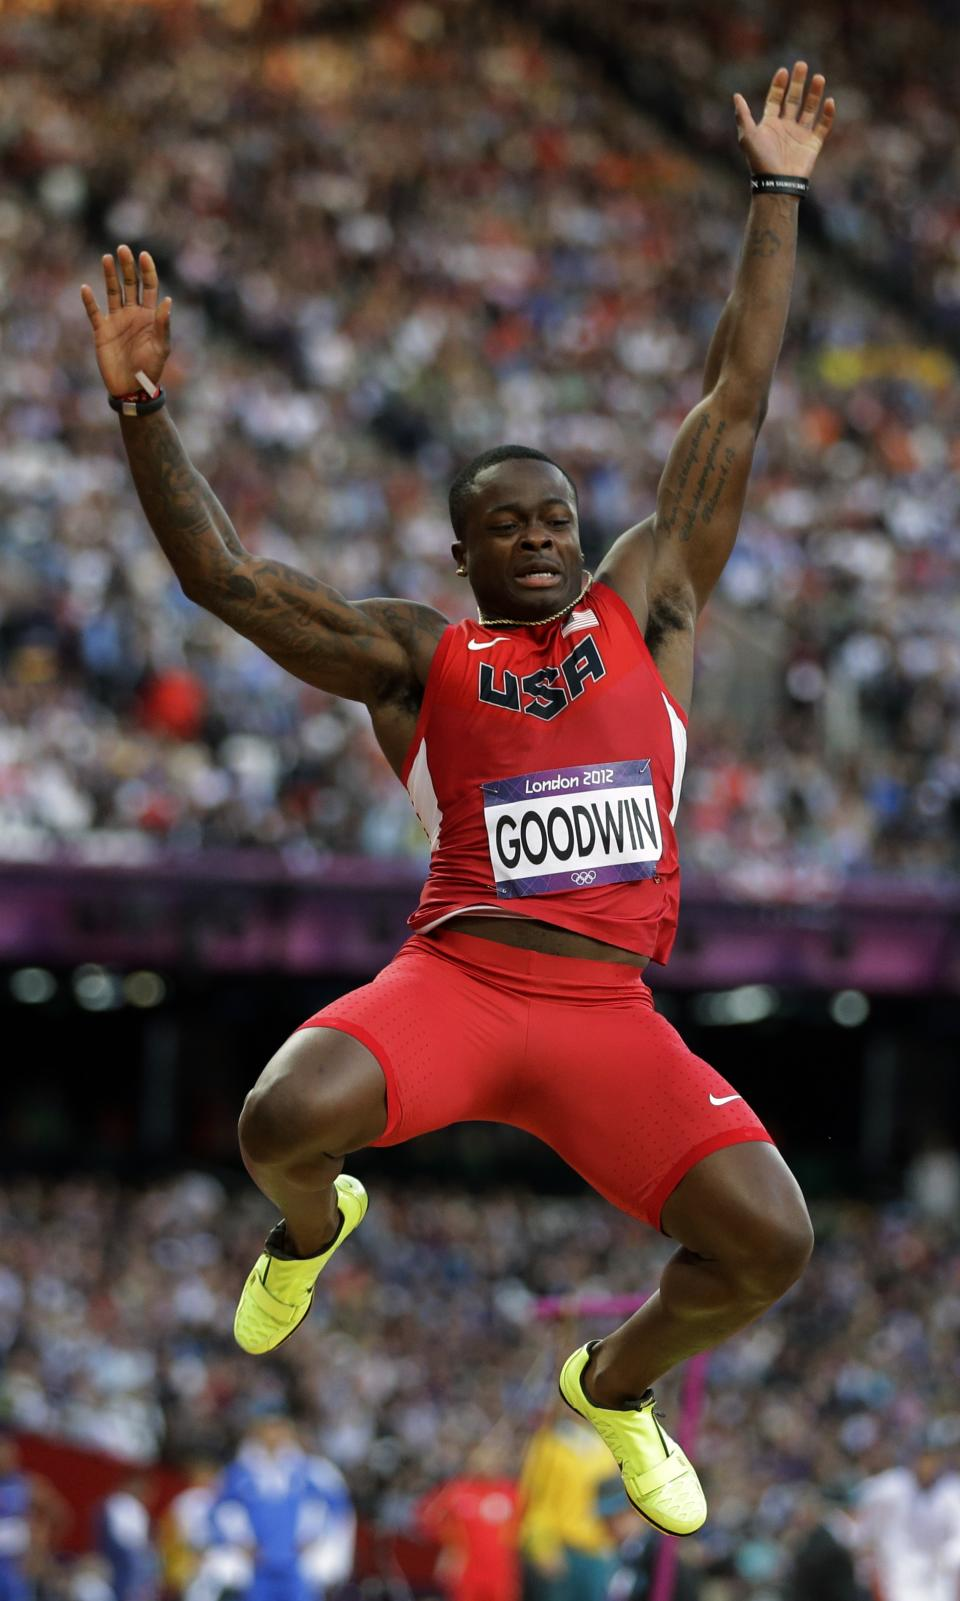 United States' Marquise Goodwin makes an attempt during the mens long jump qualification at the athletics competition in the Olympic Stadium at the 2012 Summer Olympics, Friday, Aug. 3, 2012, in London. (AP Photo/David J. Phillip )